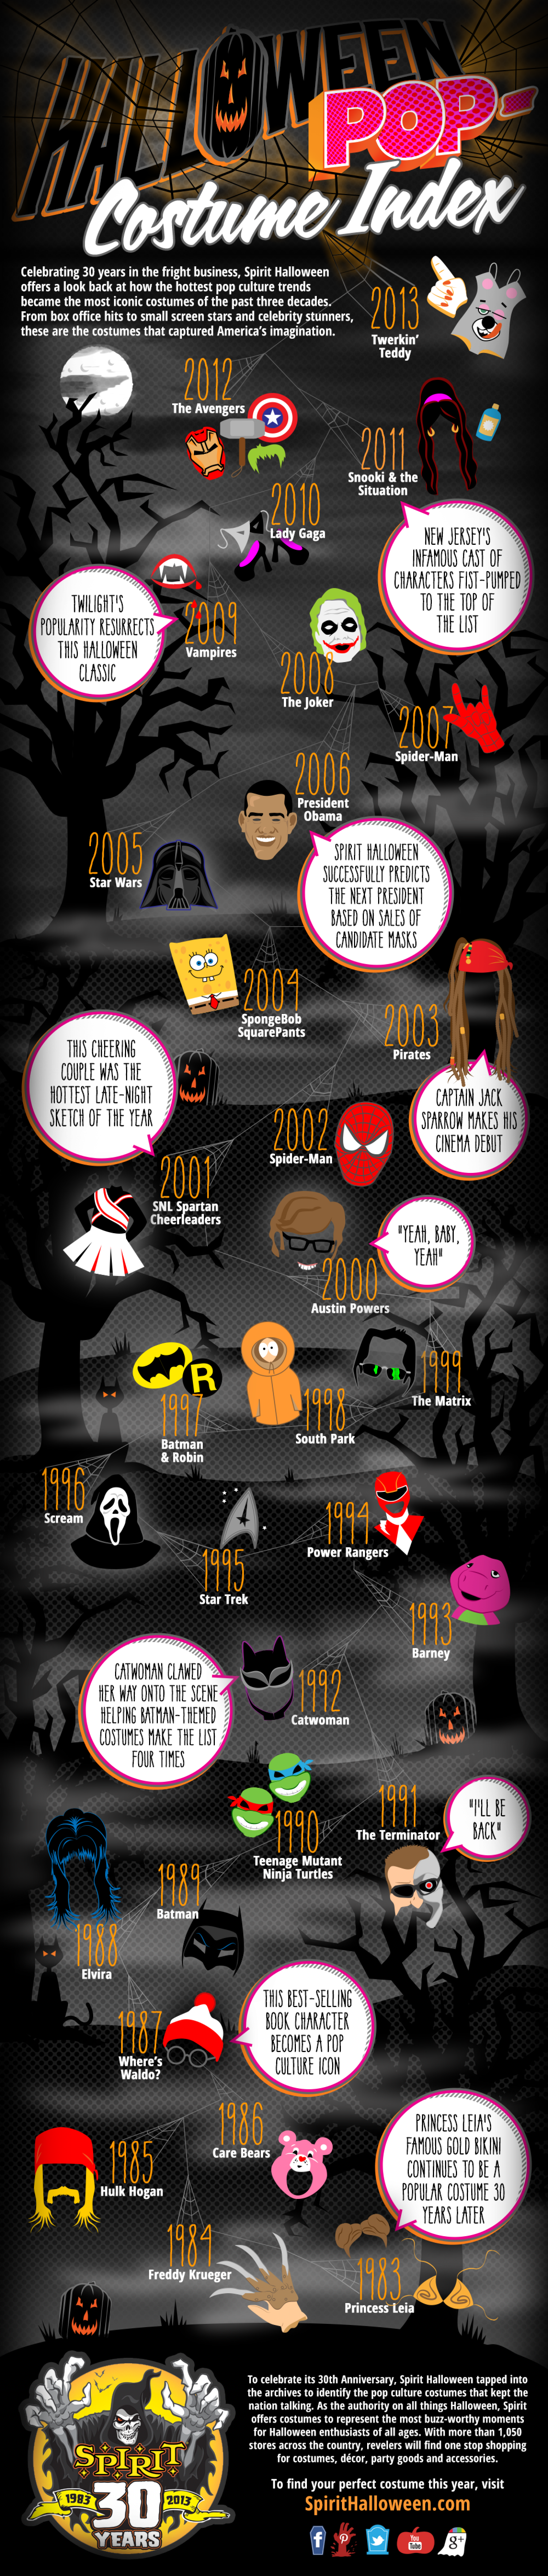 Halloween Pop-Costume Index Infographic